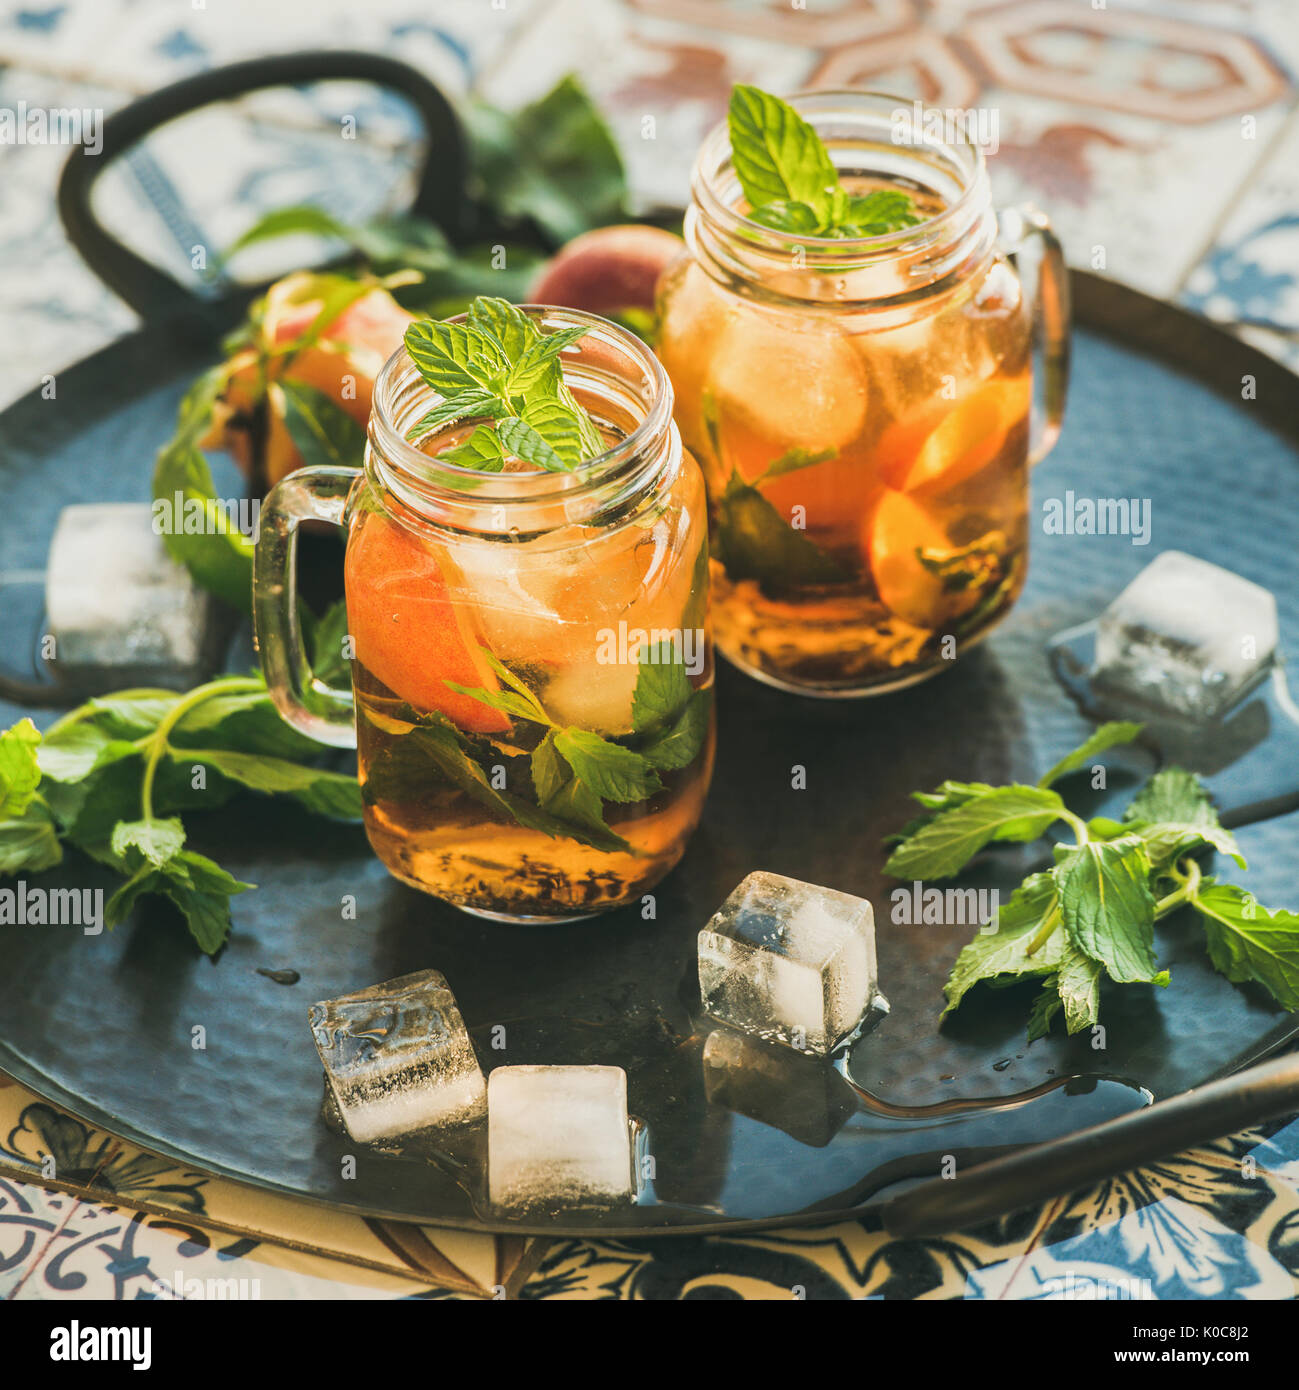 Summer refreshing cold peach ice tea with mint, square crop - Stock Image